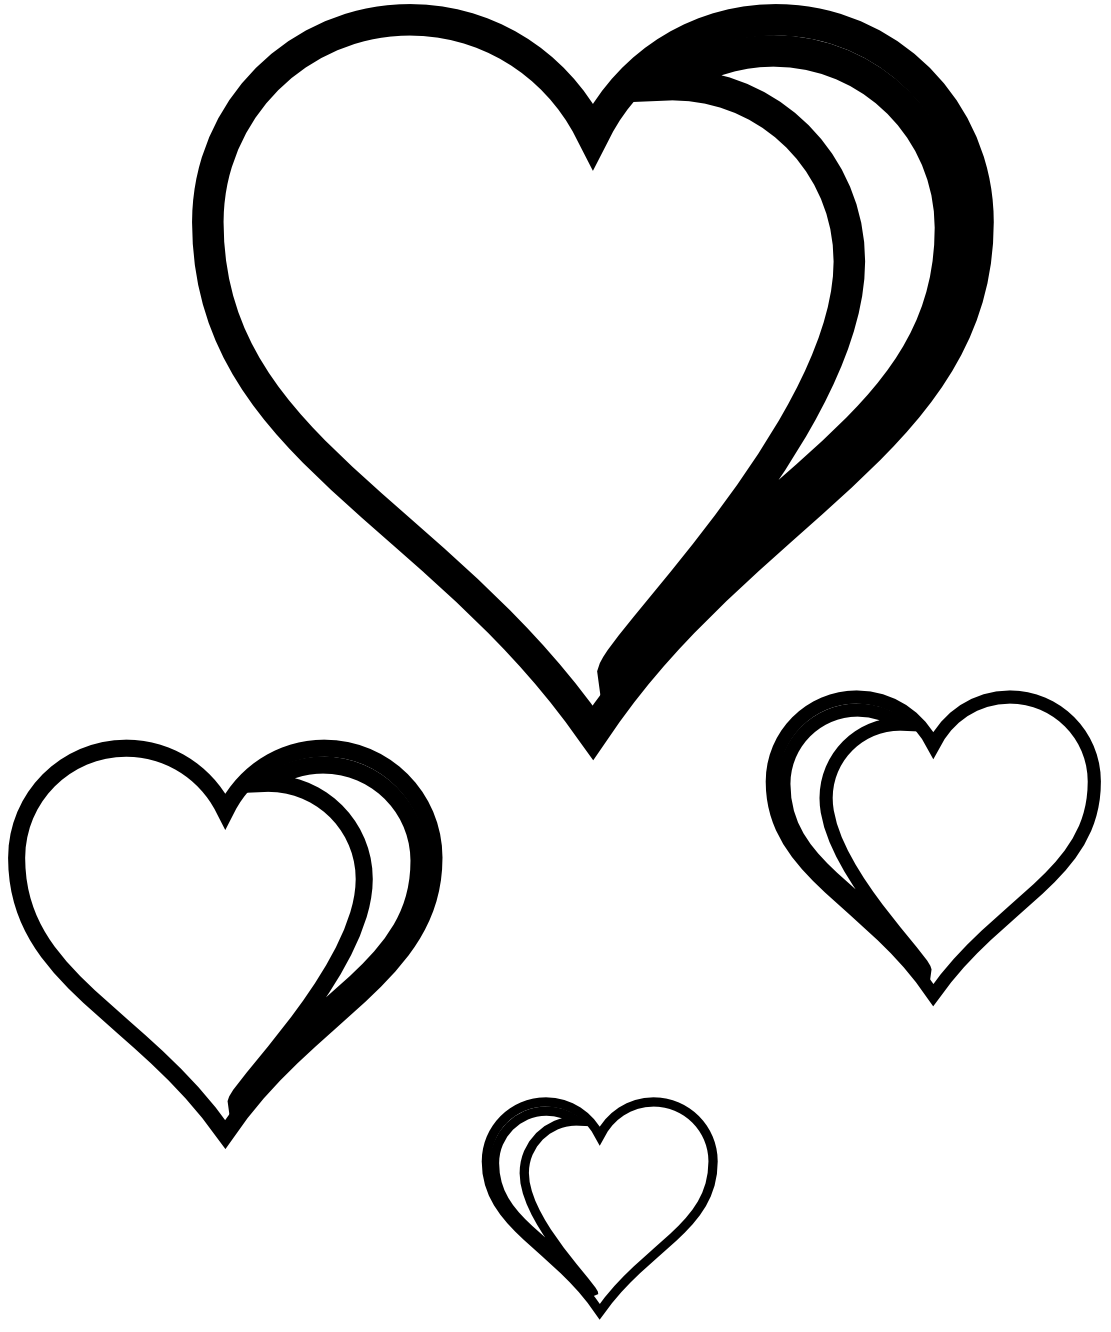 Clipart Heart Black And White Clipart Pa-Clipart Heart Black And White Clipart Panda Free Clipart Images-7